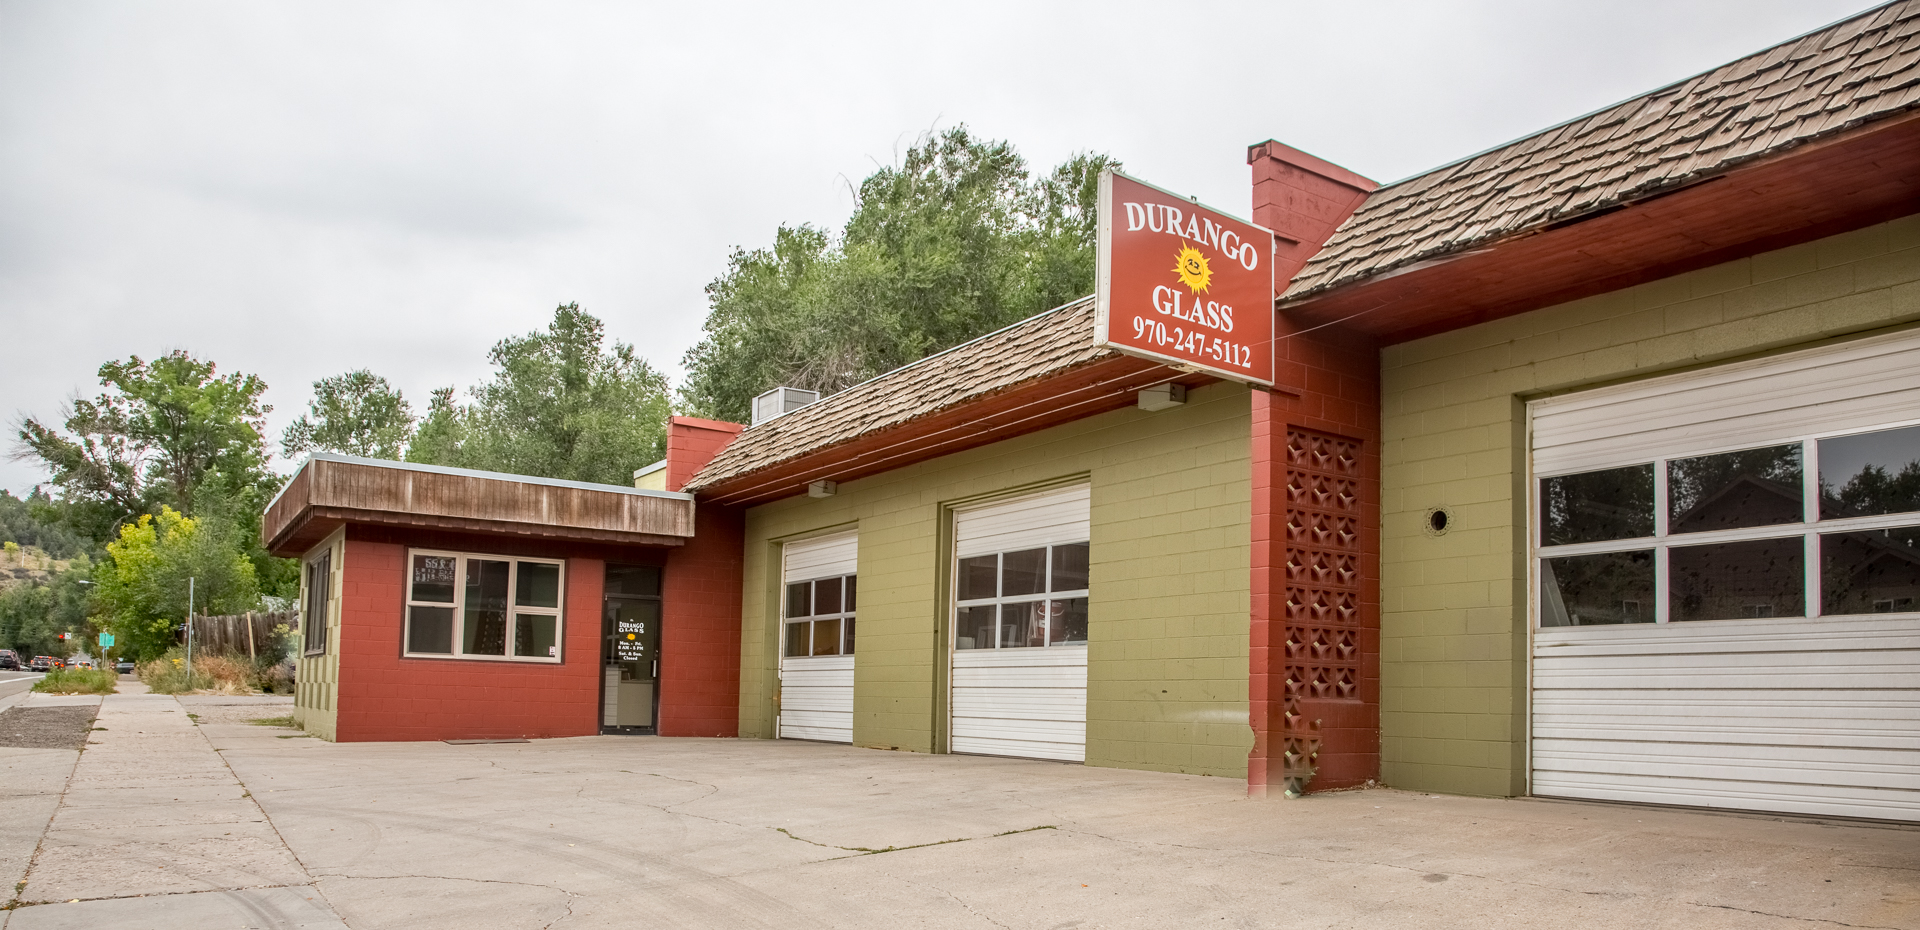 durango glass storefront building in durango colorado providing glass services like winshields